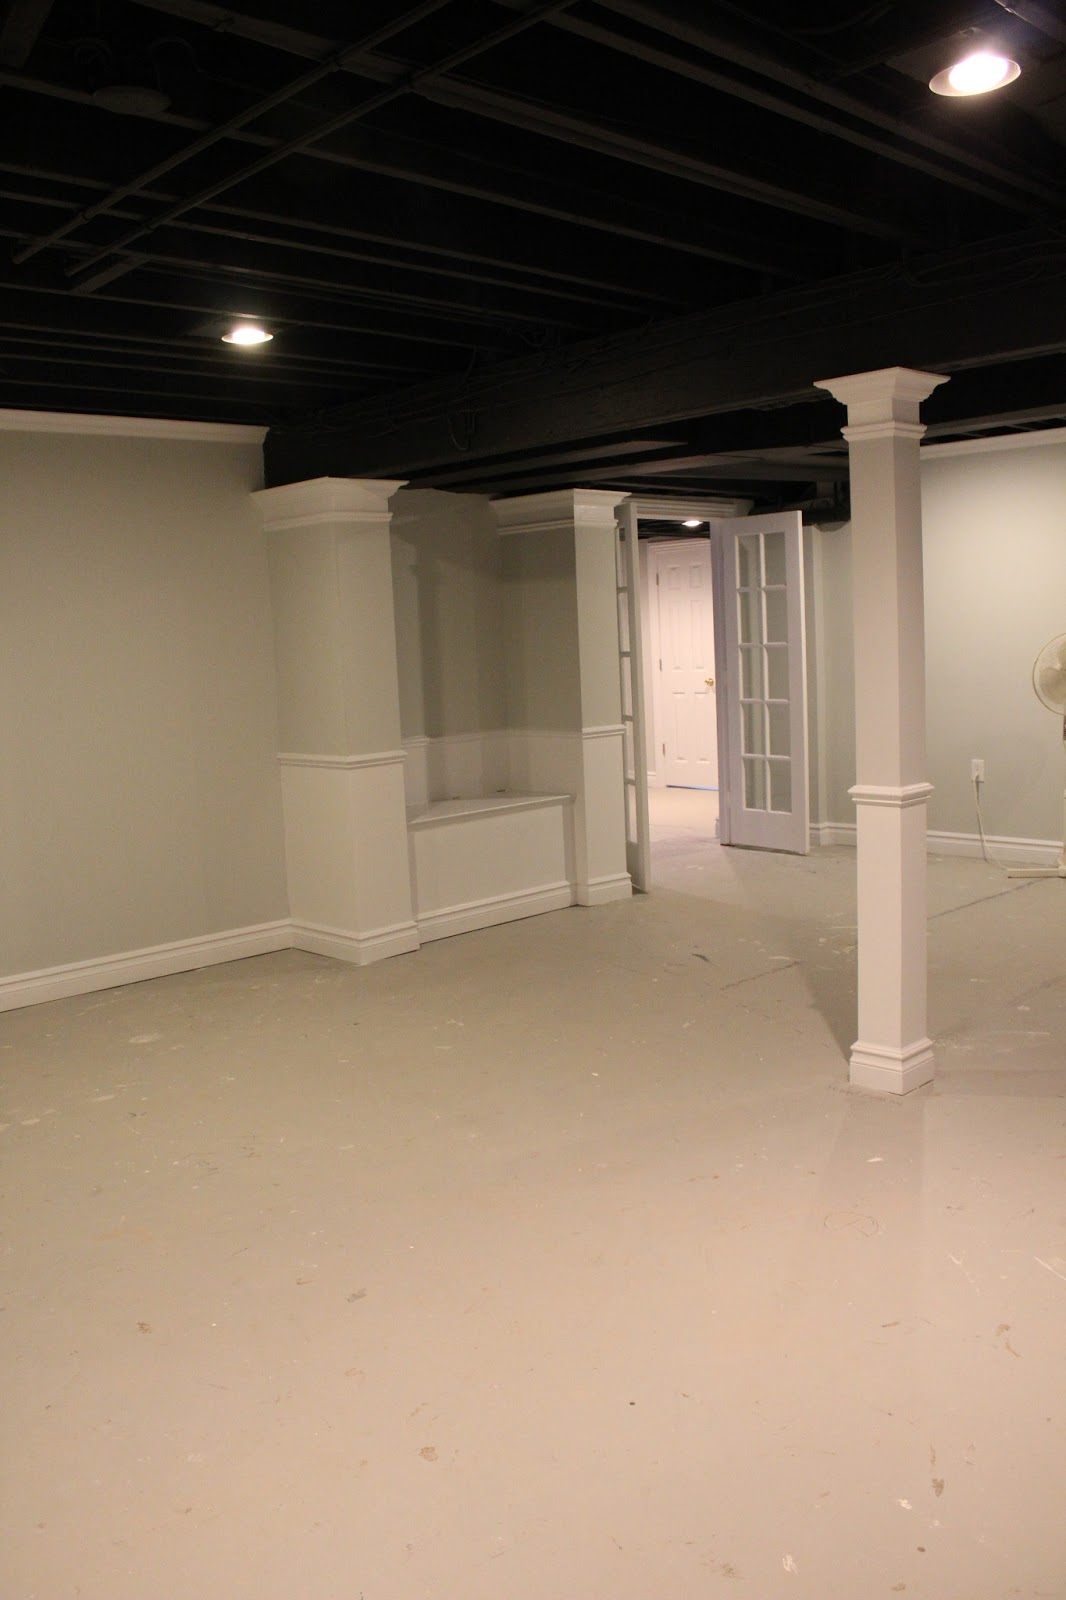 Painted Basement Ceiling Ideas More Painted Ceiling Ideas For